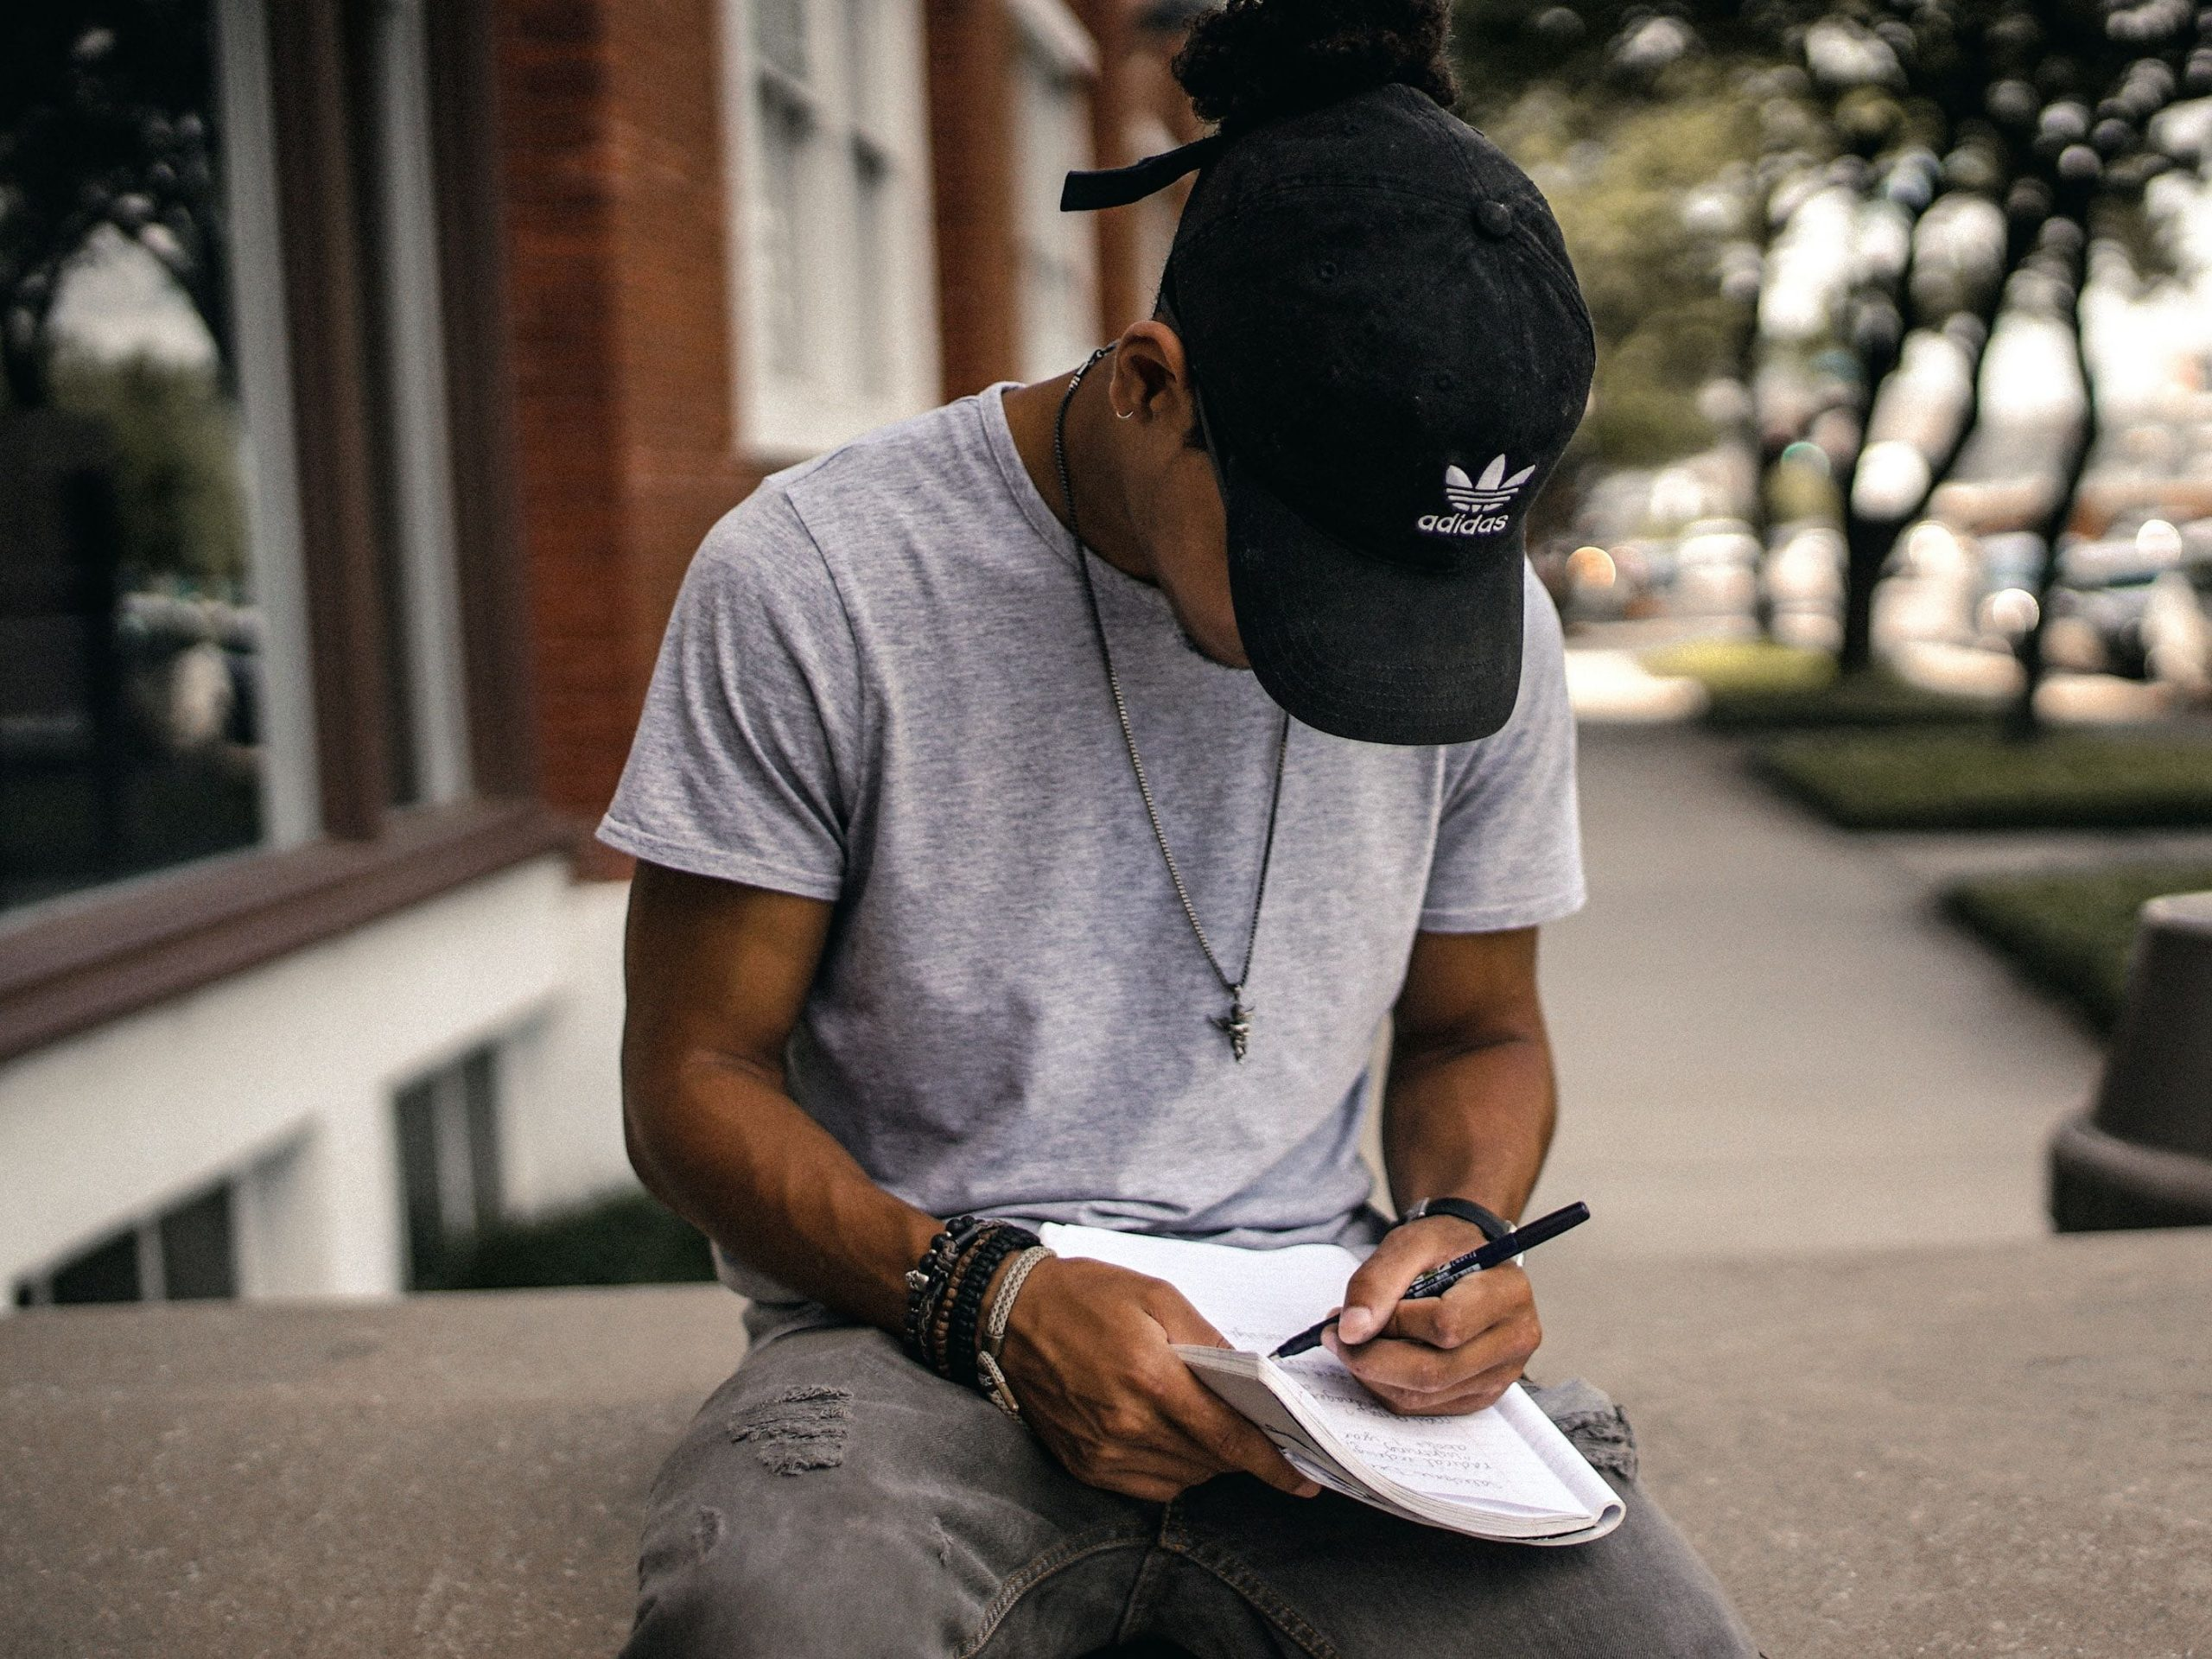 7 Tips For Finding Time to Write as a College Student